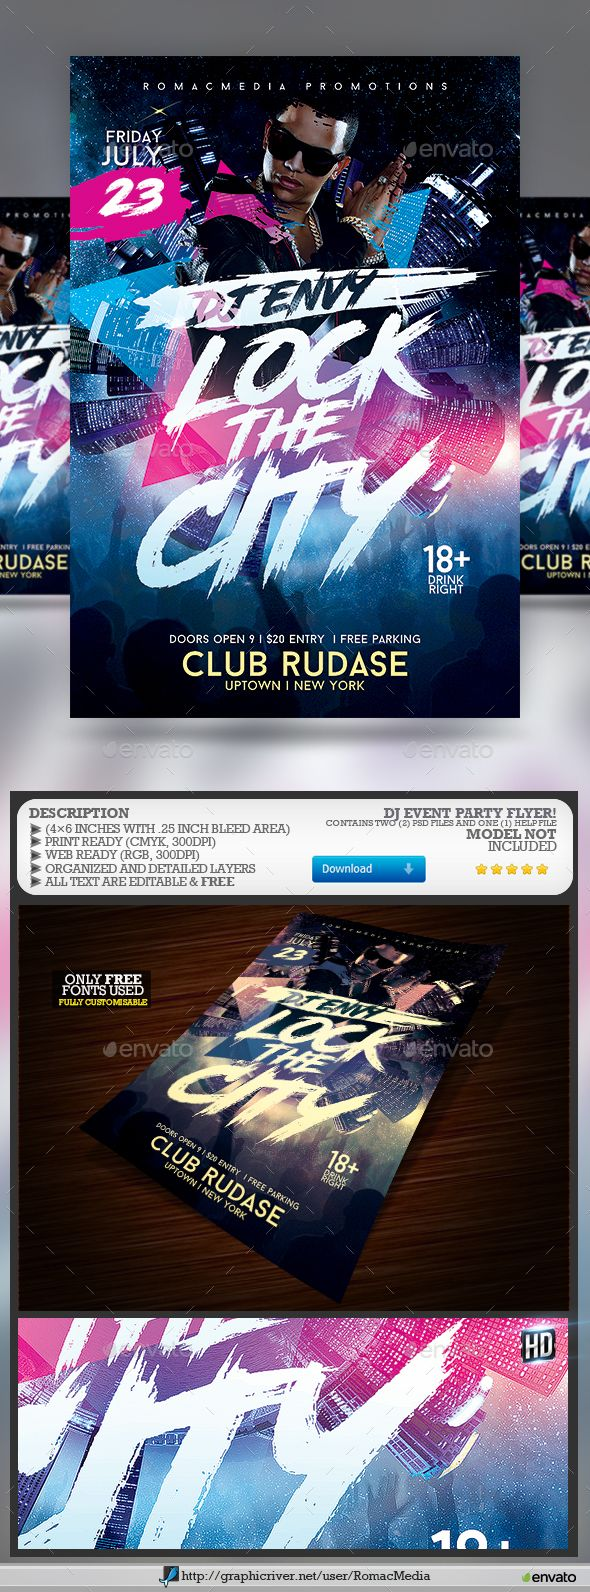 Pin by best Graphic Design on Flyer Templates | Flyer design